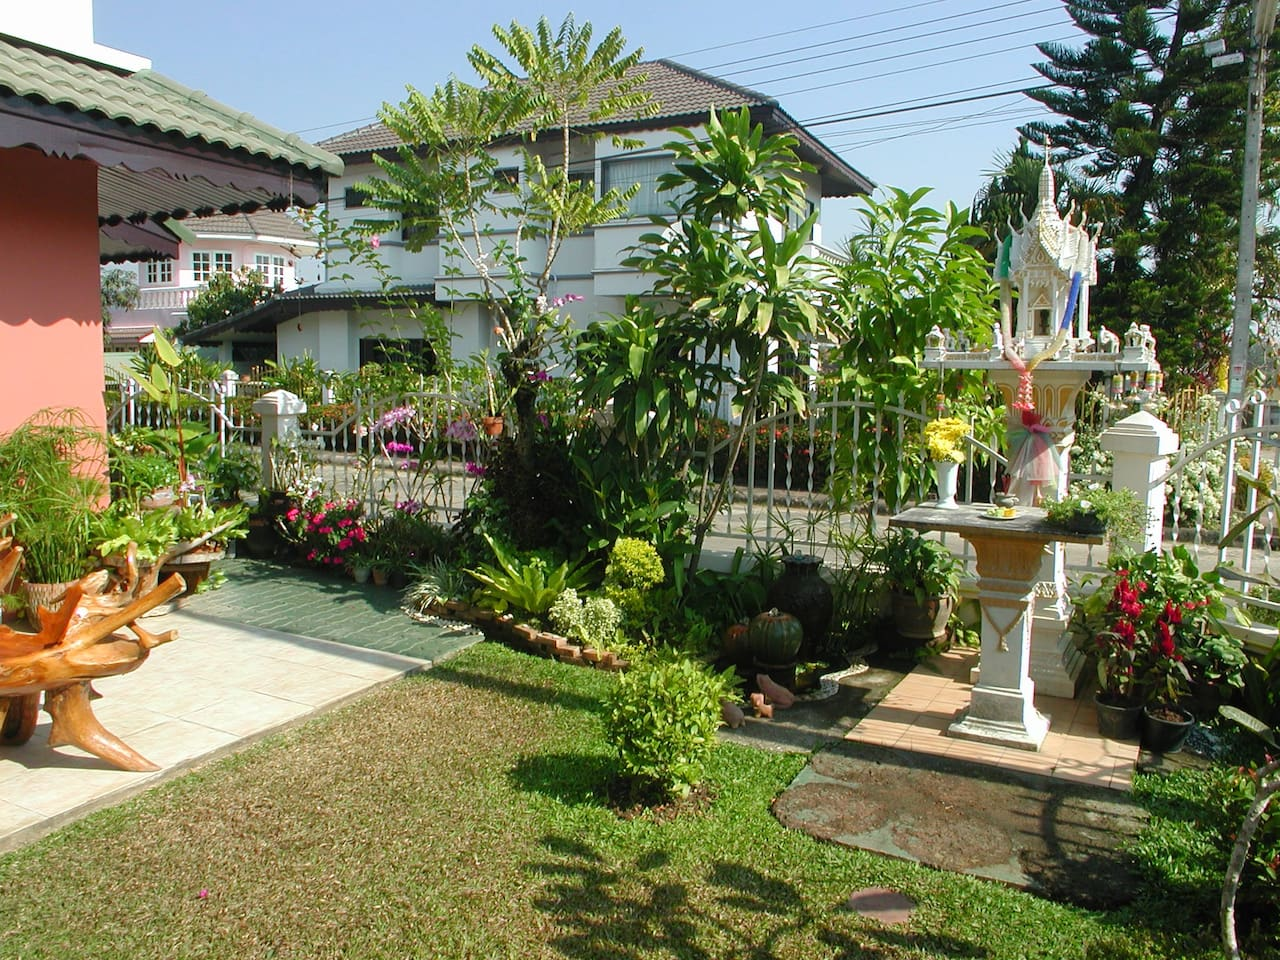 A view of the garden and our spirit house :)